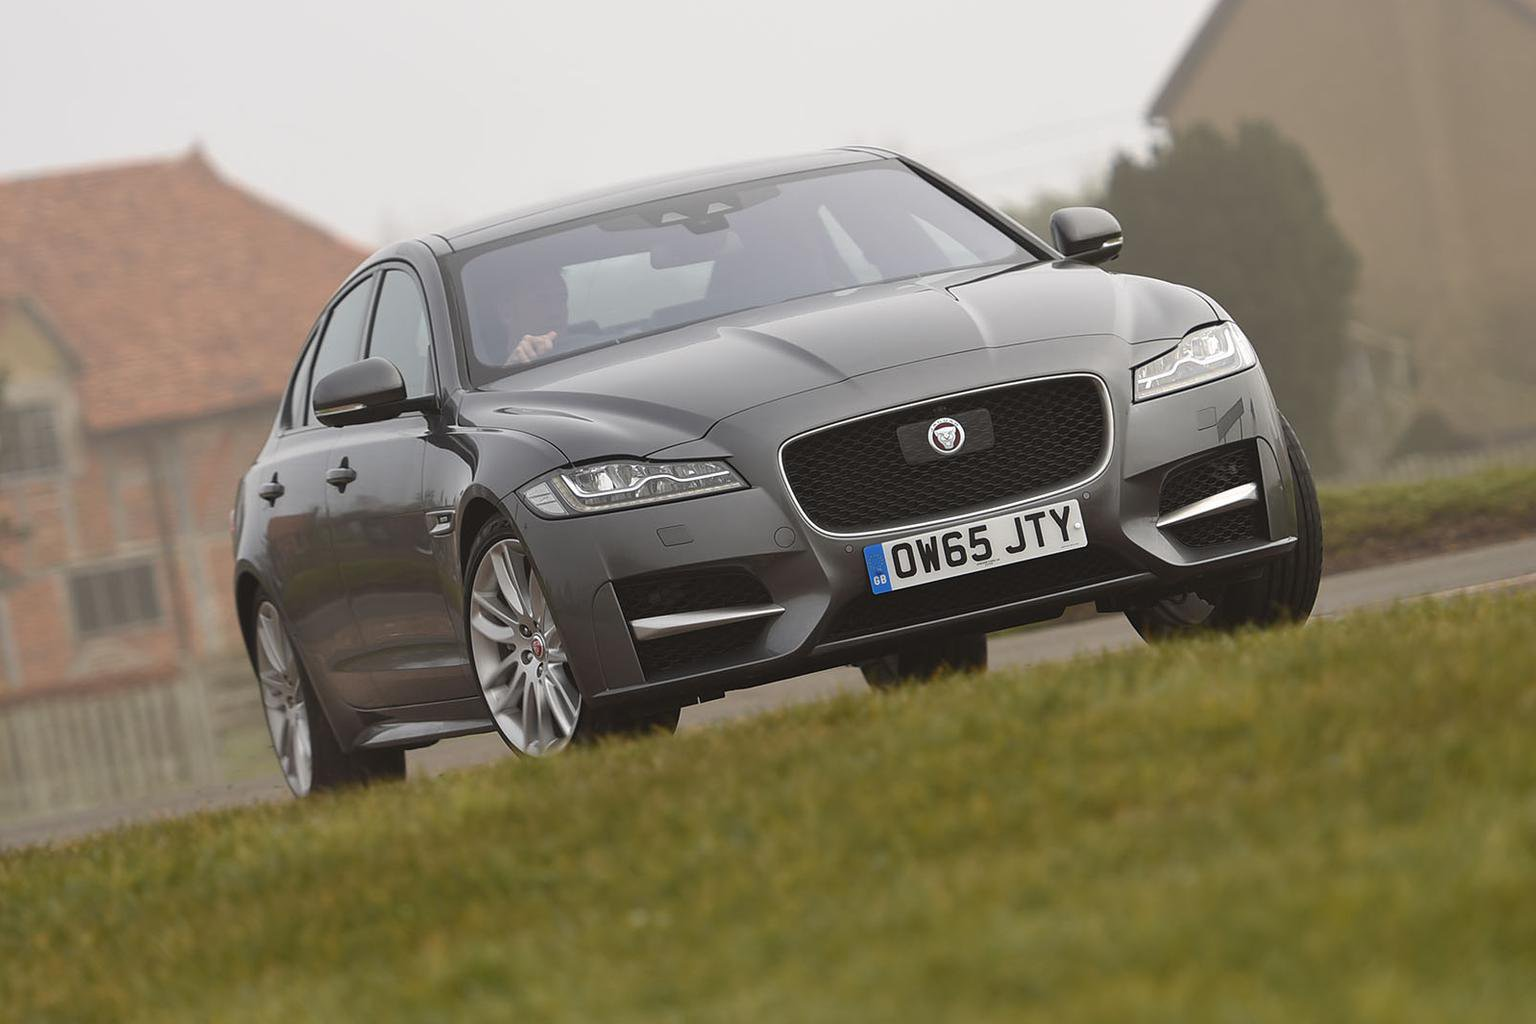 2016 Jaguar XF 2.0d 180 AWD review